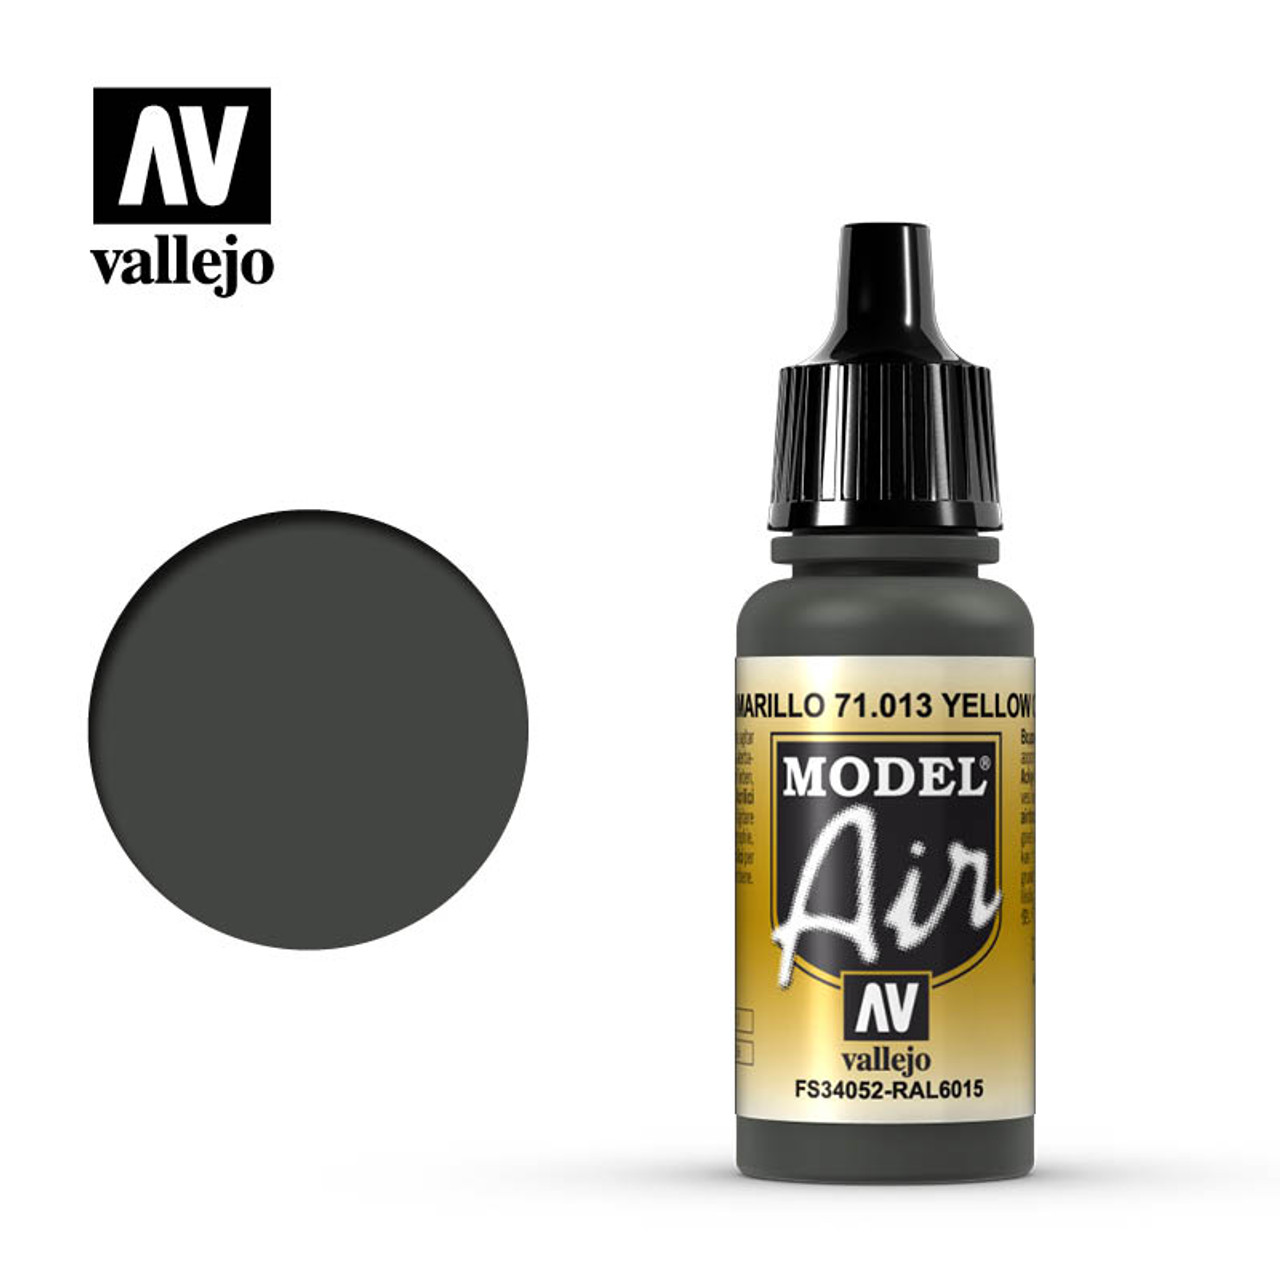 Vallejo Model Air 17ml - YELLOW OLIVE